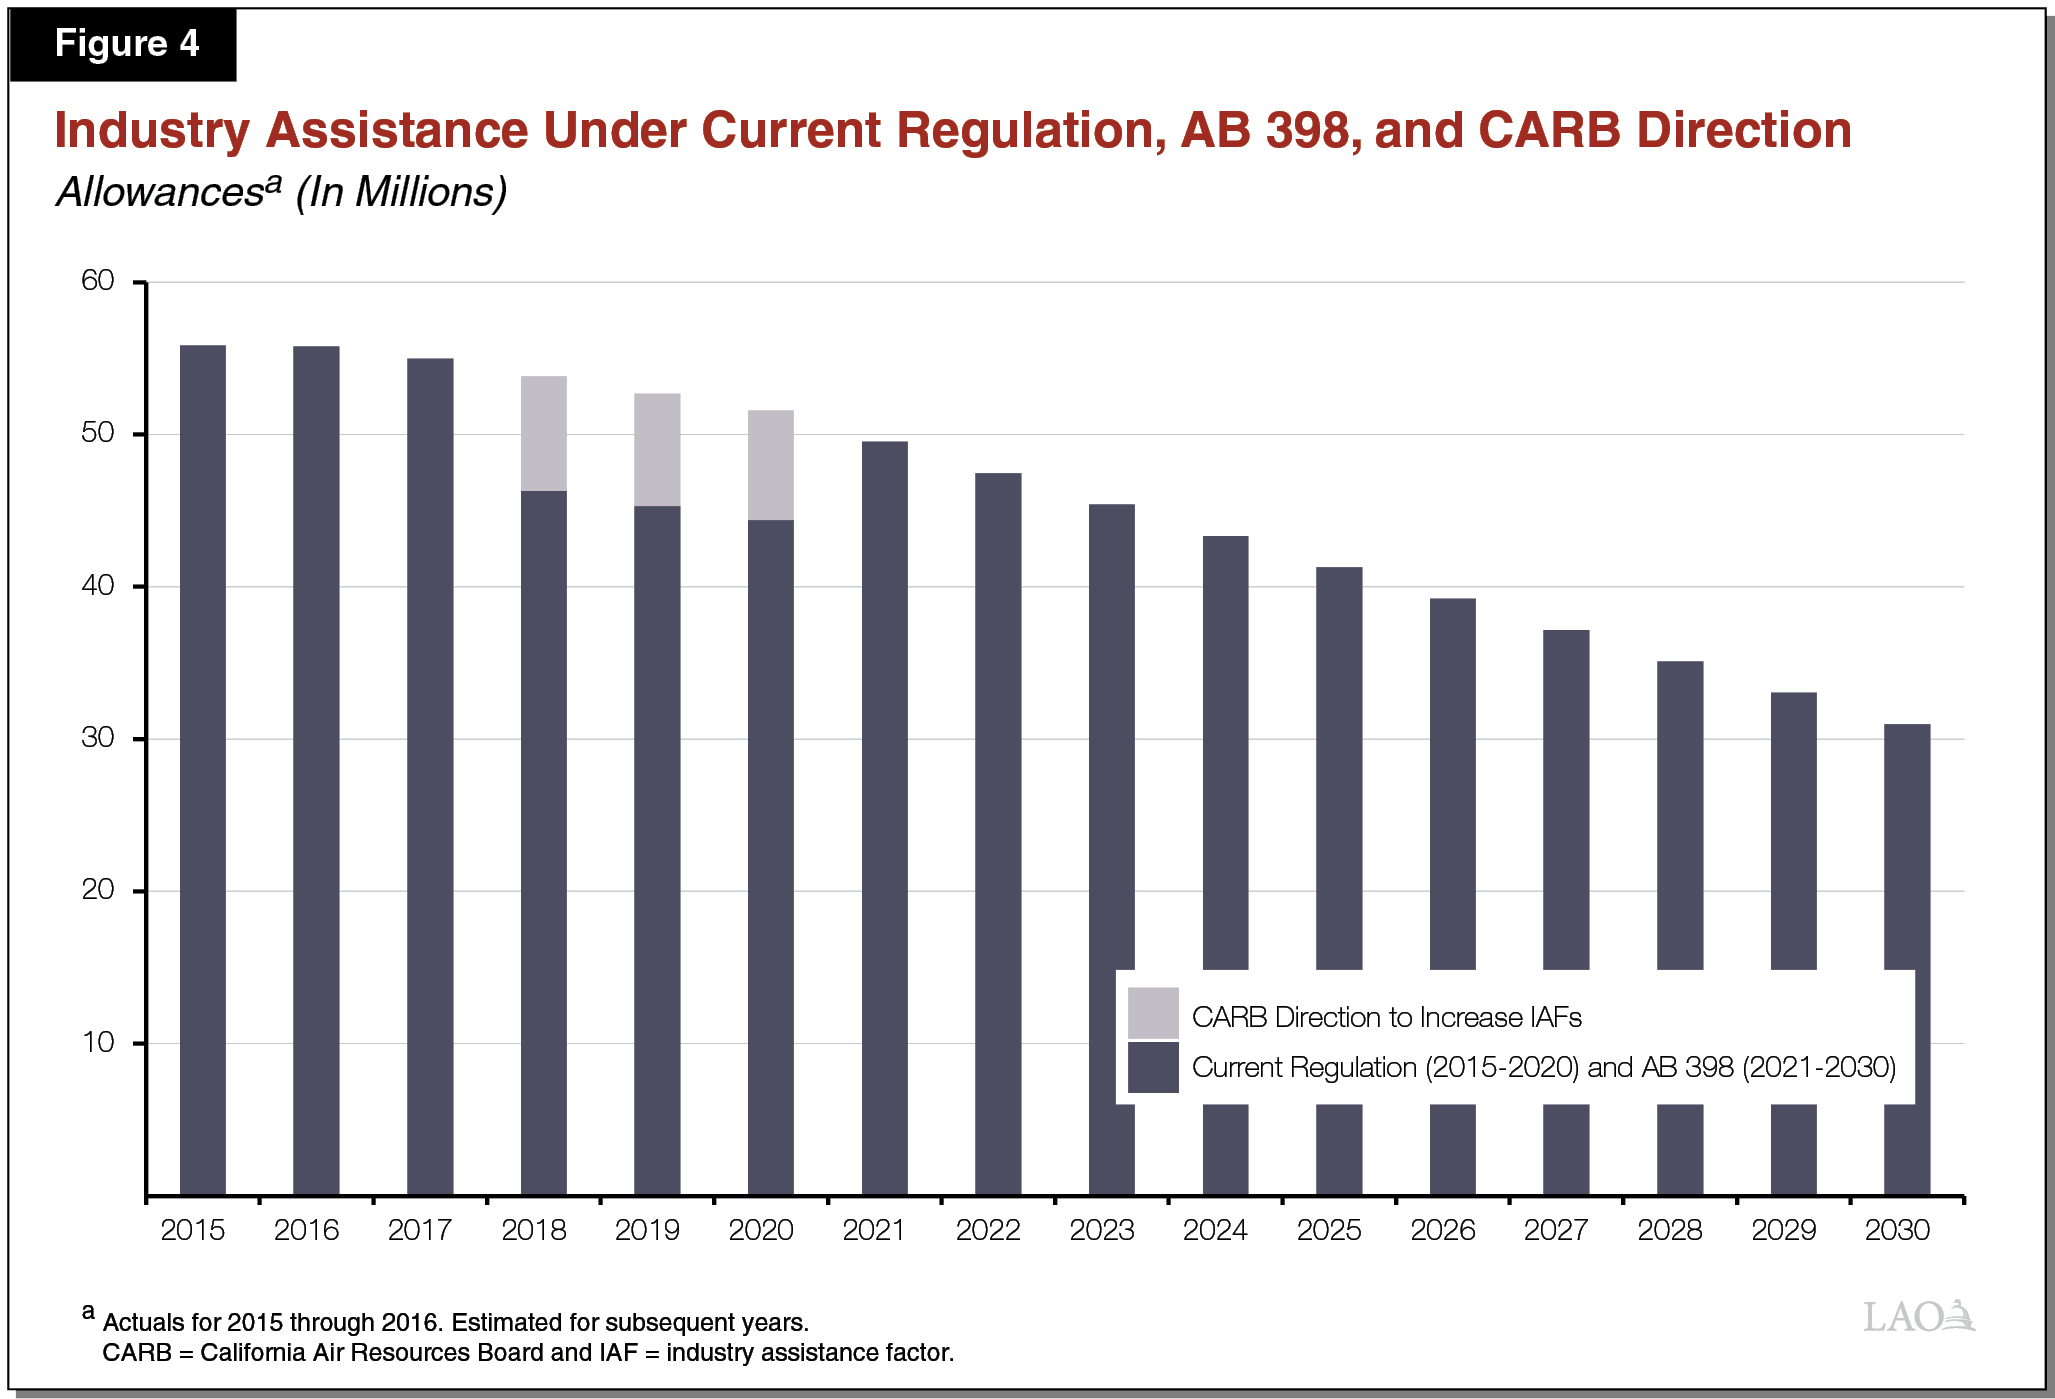 Figure 4 - Industry Assistance Under Current Regulation, AB 398, and CARB Direction